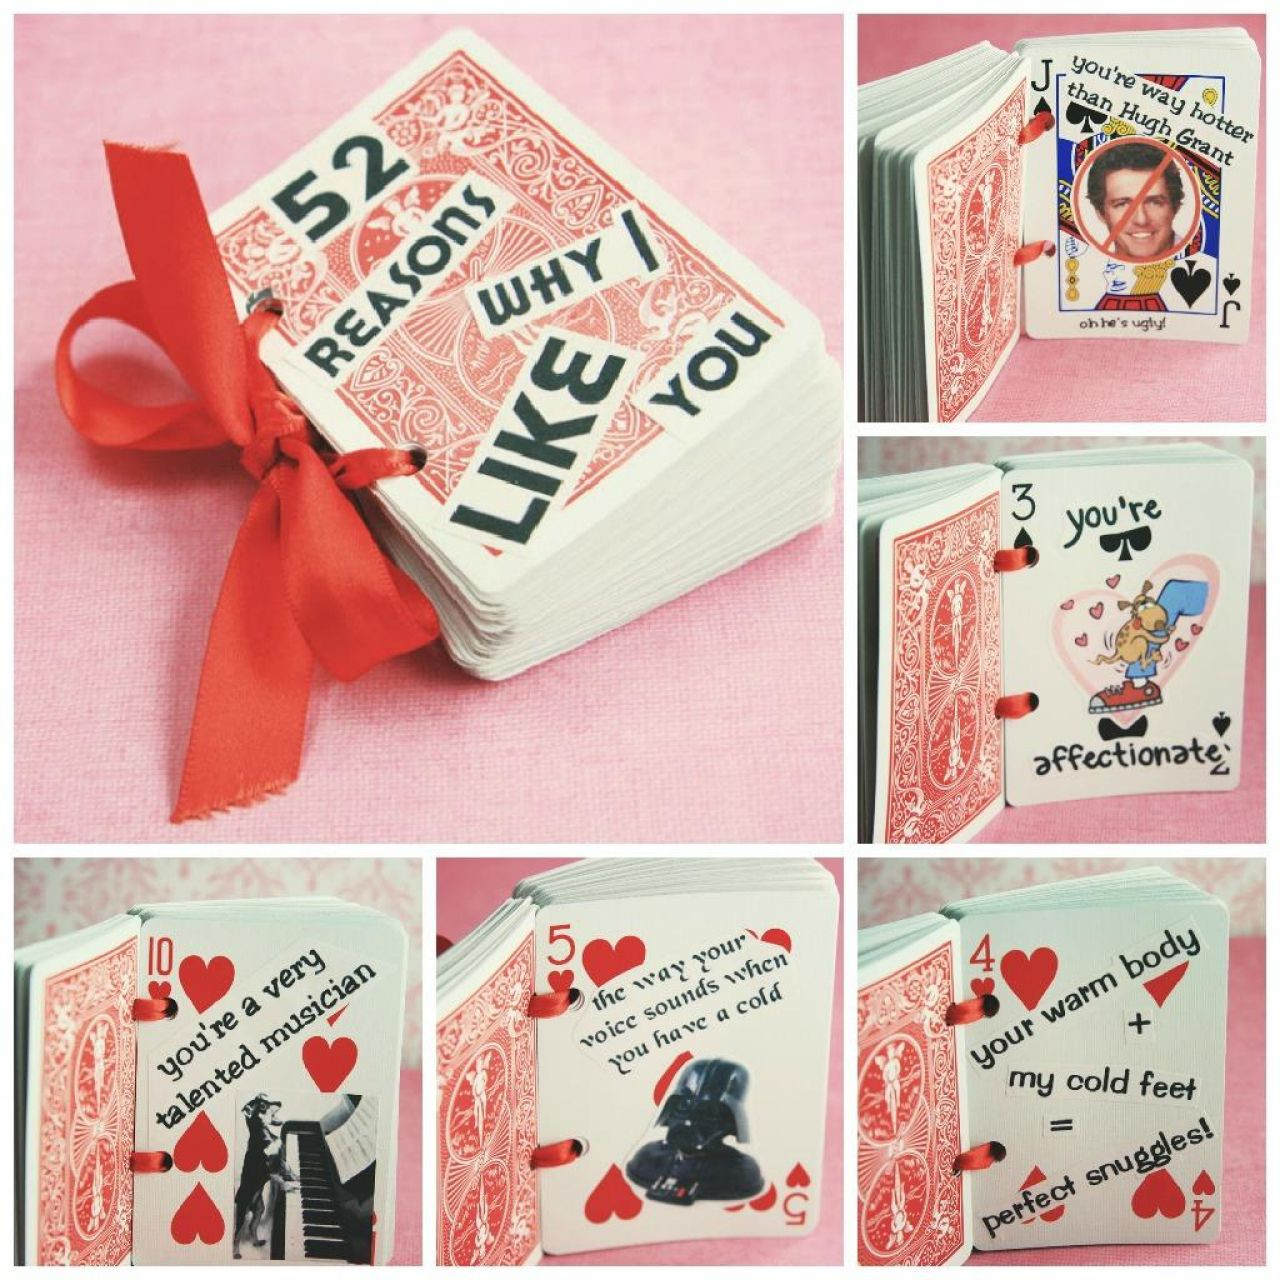 Valentines Gift Ideas For Him  17 Last Minute Handmade Valentine Gifts for Him